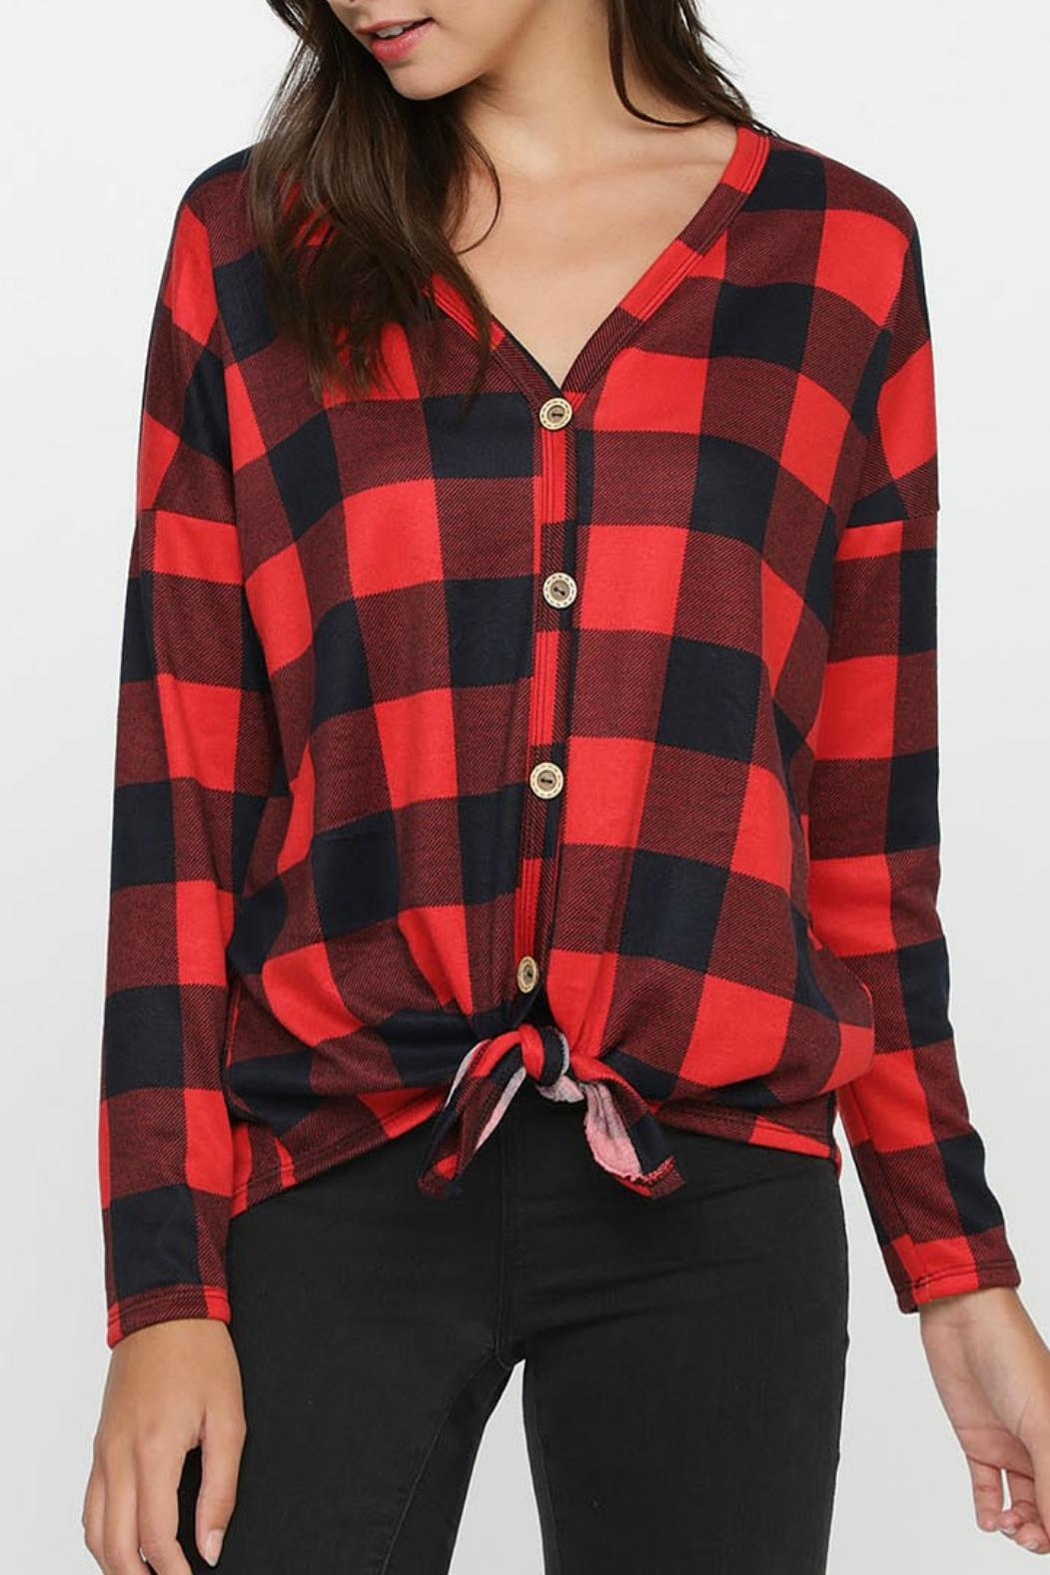 Pretty Little Things Plaid Knit Top - Main Image